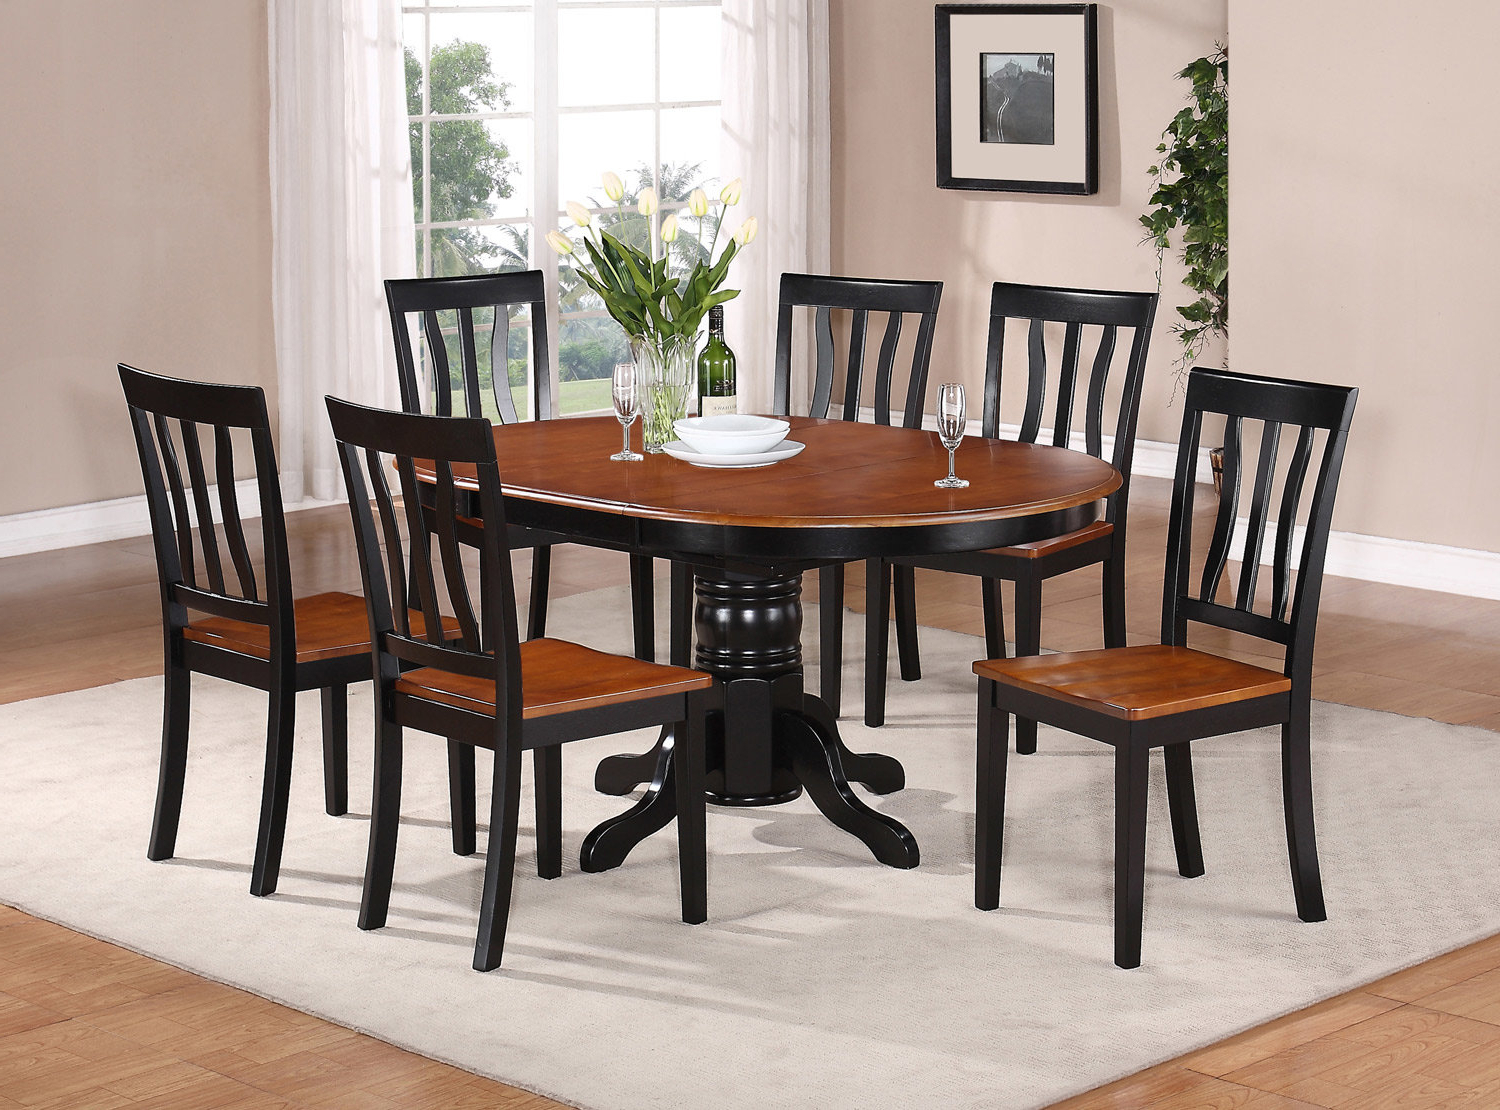 Most Current Pattonsburg 5 Piece Dining Sets For Spurling 7 Piece Drop Leaf Solid Wood Dining Set & Reviews (View 9 of 25)